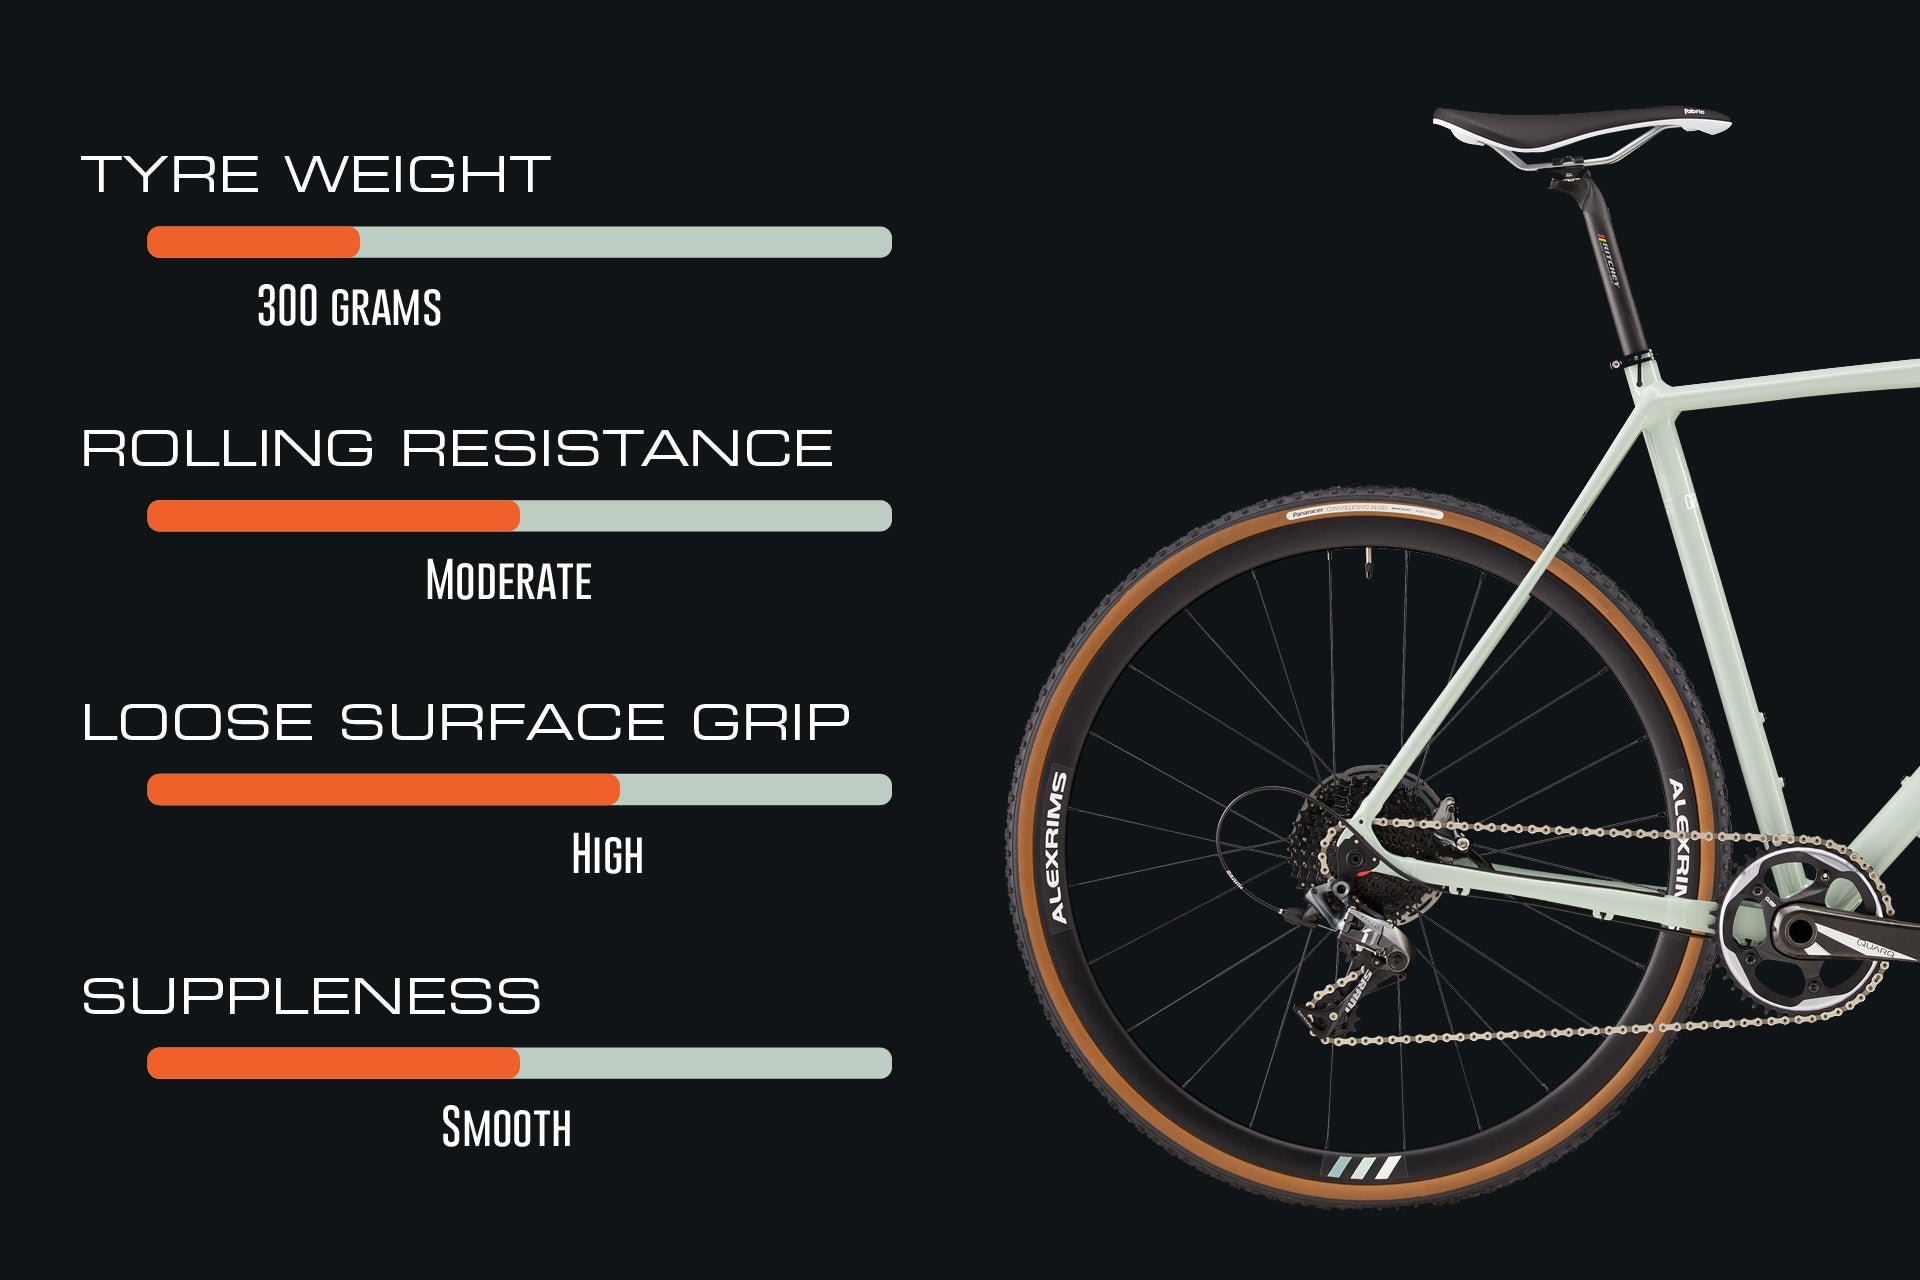 Panaracer gravelKing Mud 700x33 performance and features